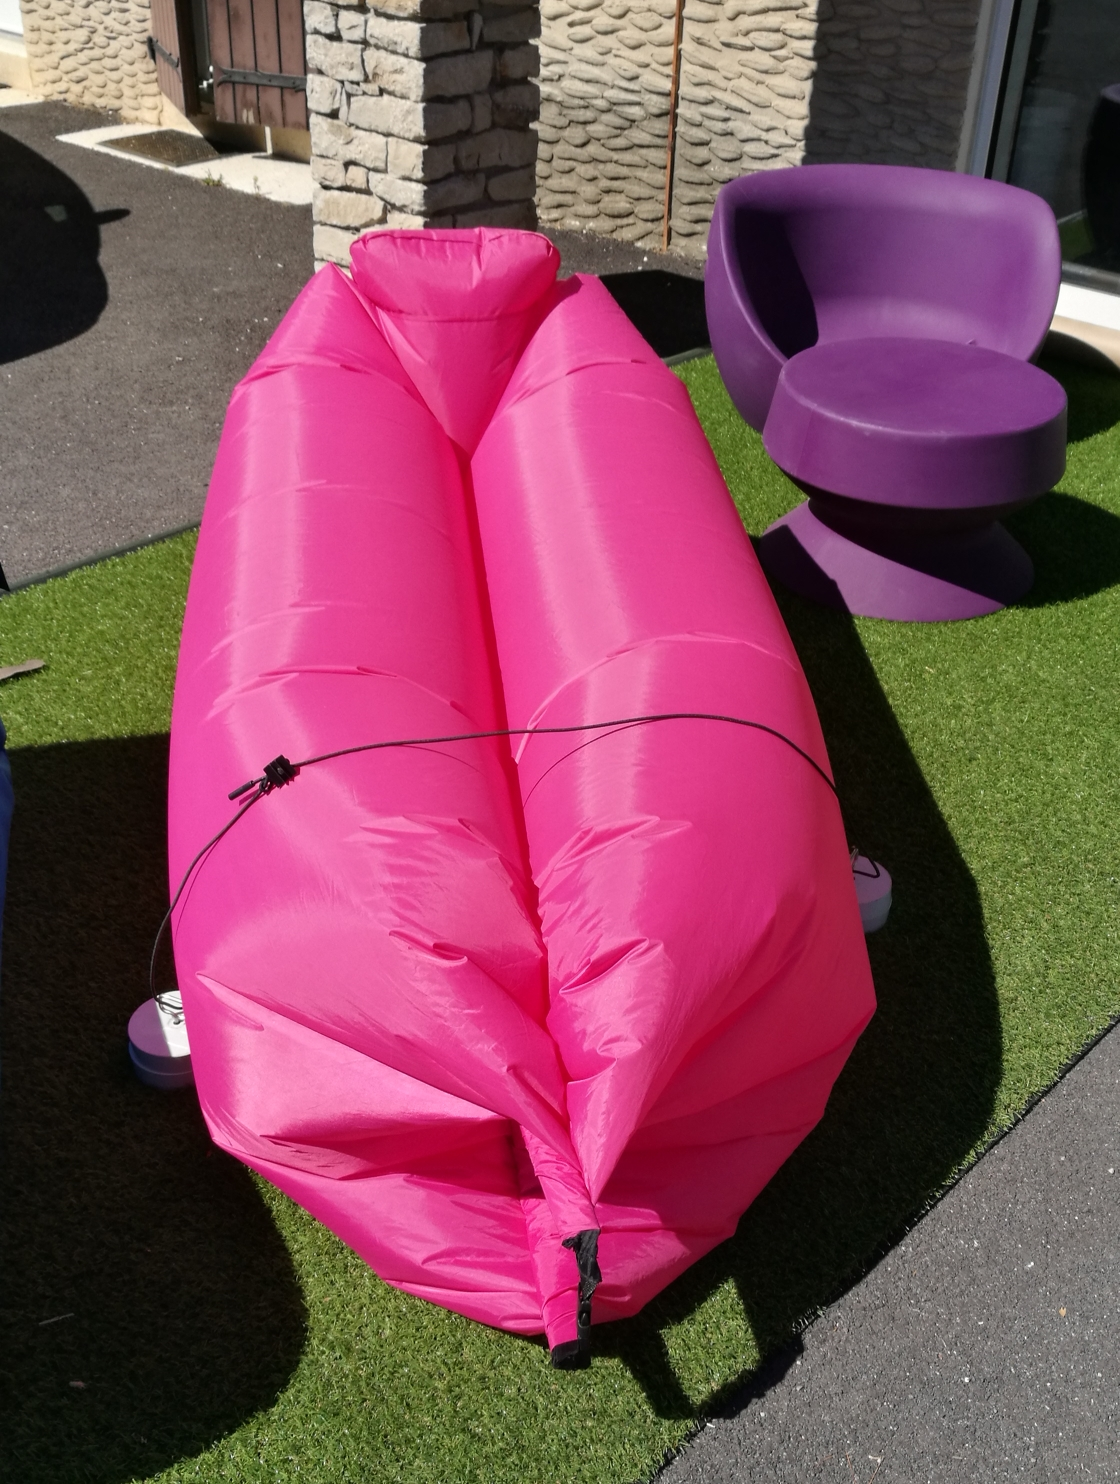 Hamac Gonflable - inflatable sleeping bed